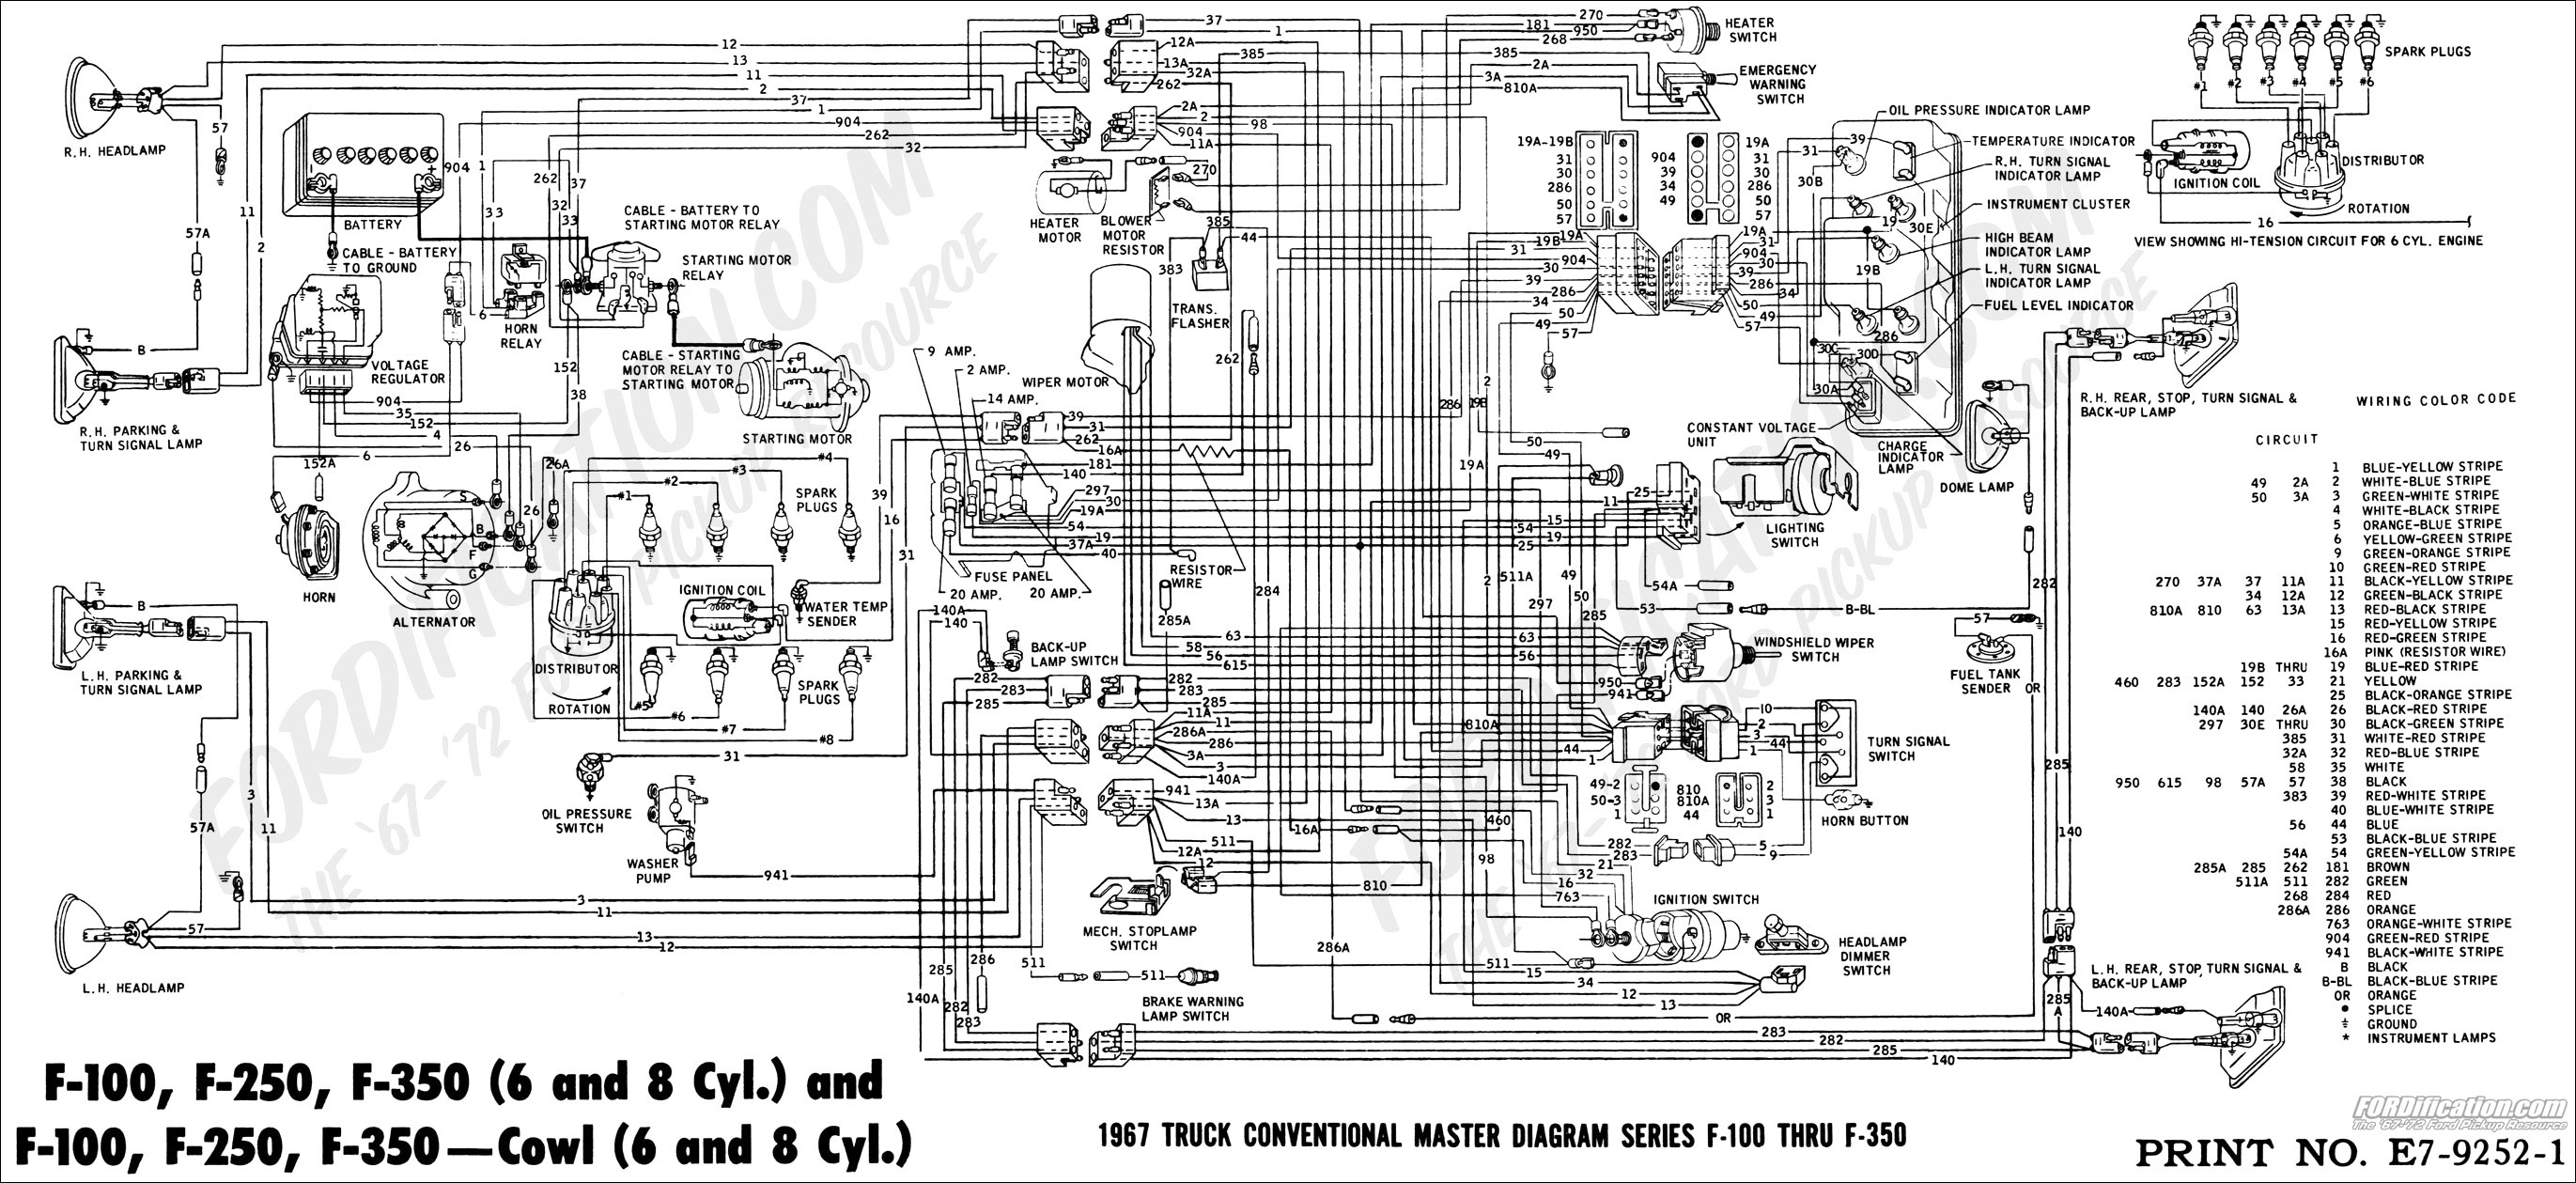 1988 ford truck cab foldout wiring diagram original f600 f700  1987 ford f700 wiring manual sample user manual u2022 rh ctsedu us